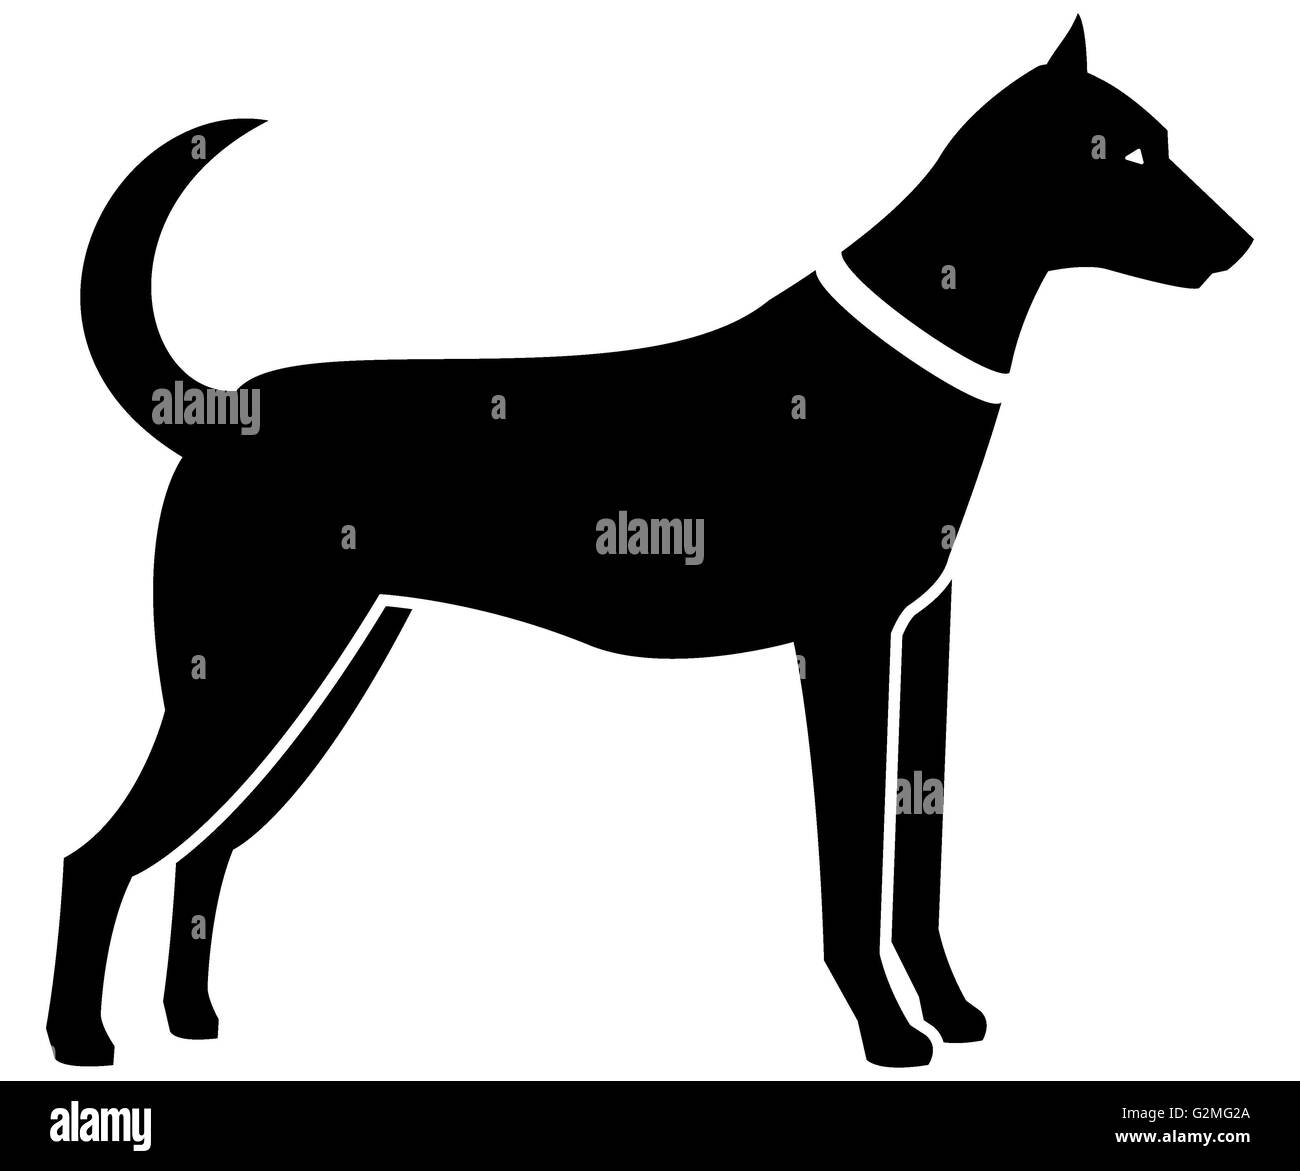 Silhouette of dog on white background - Stock Image